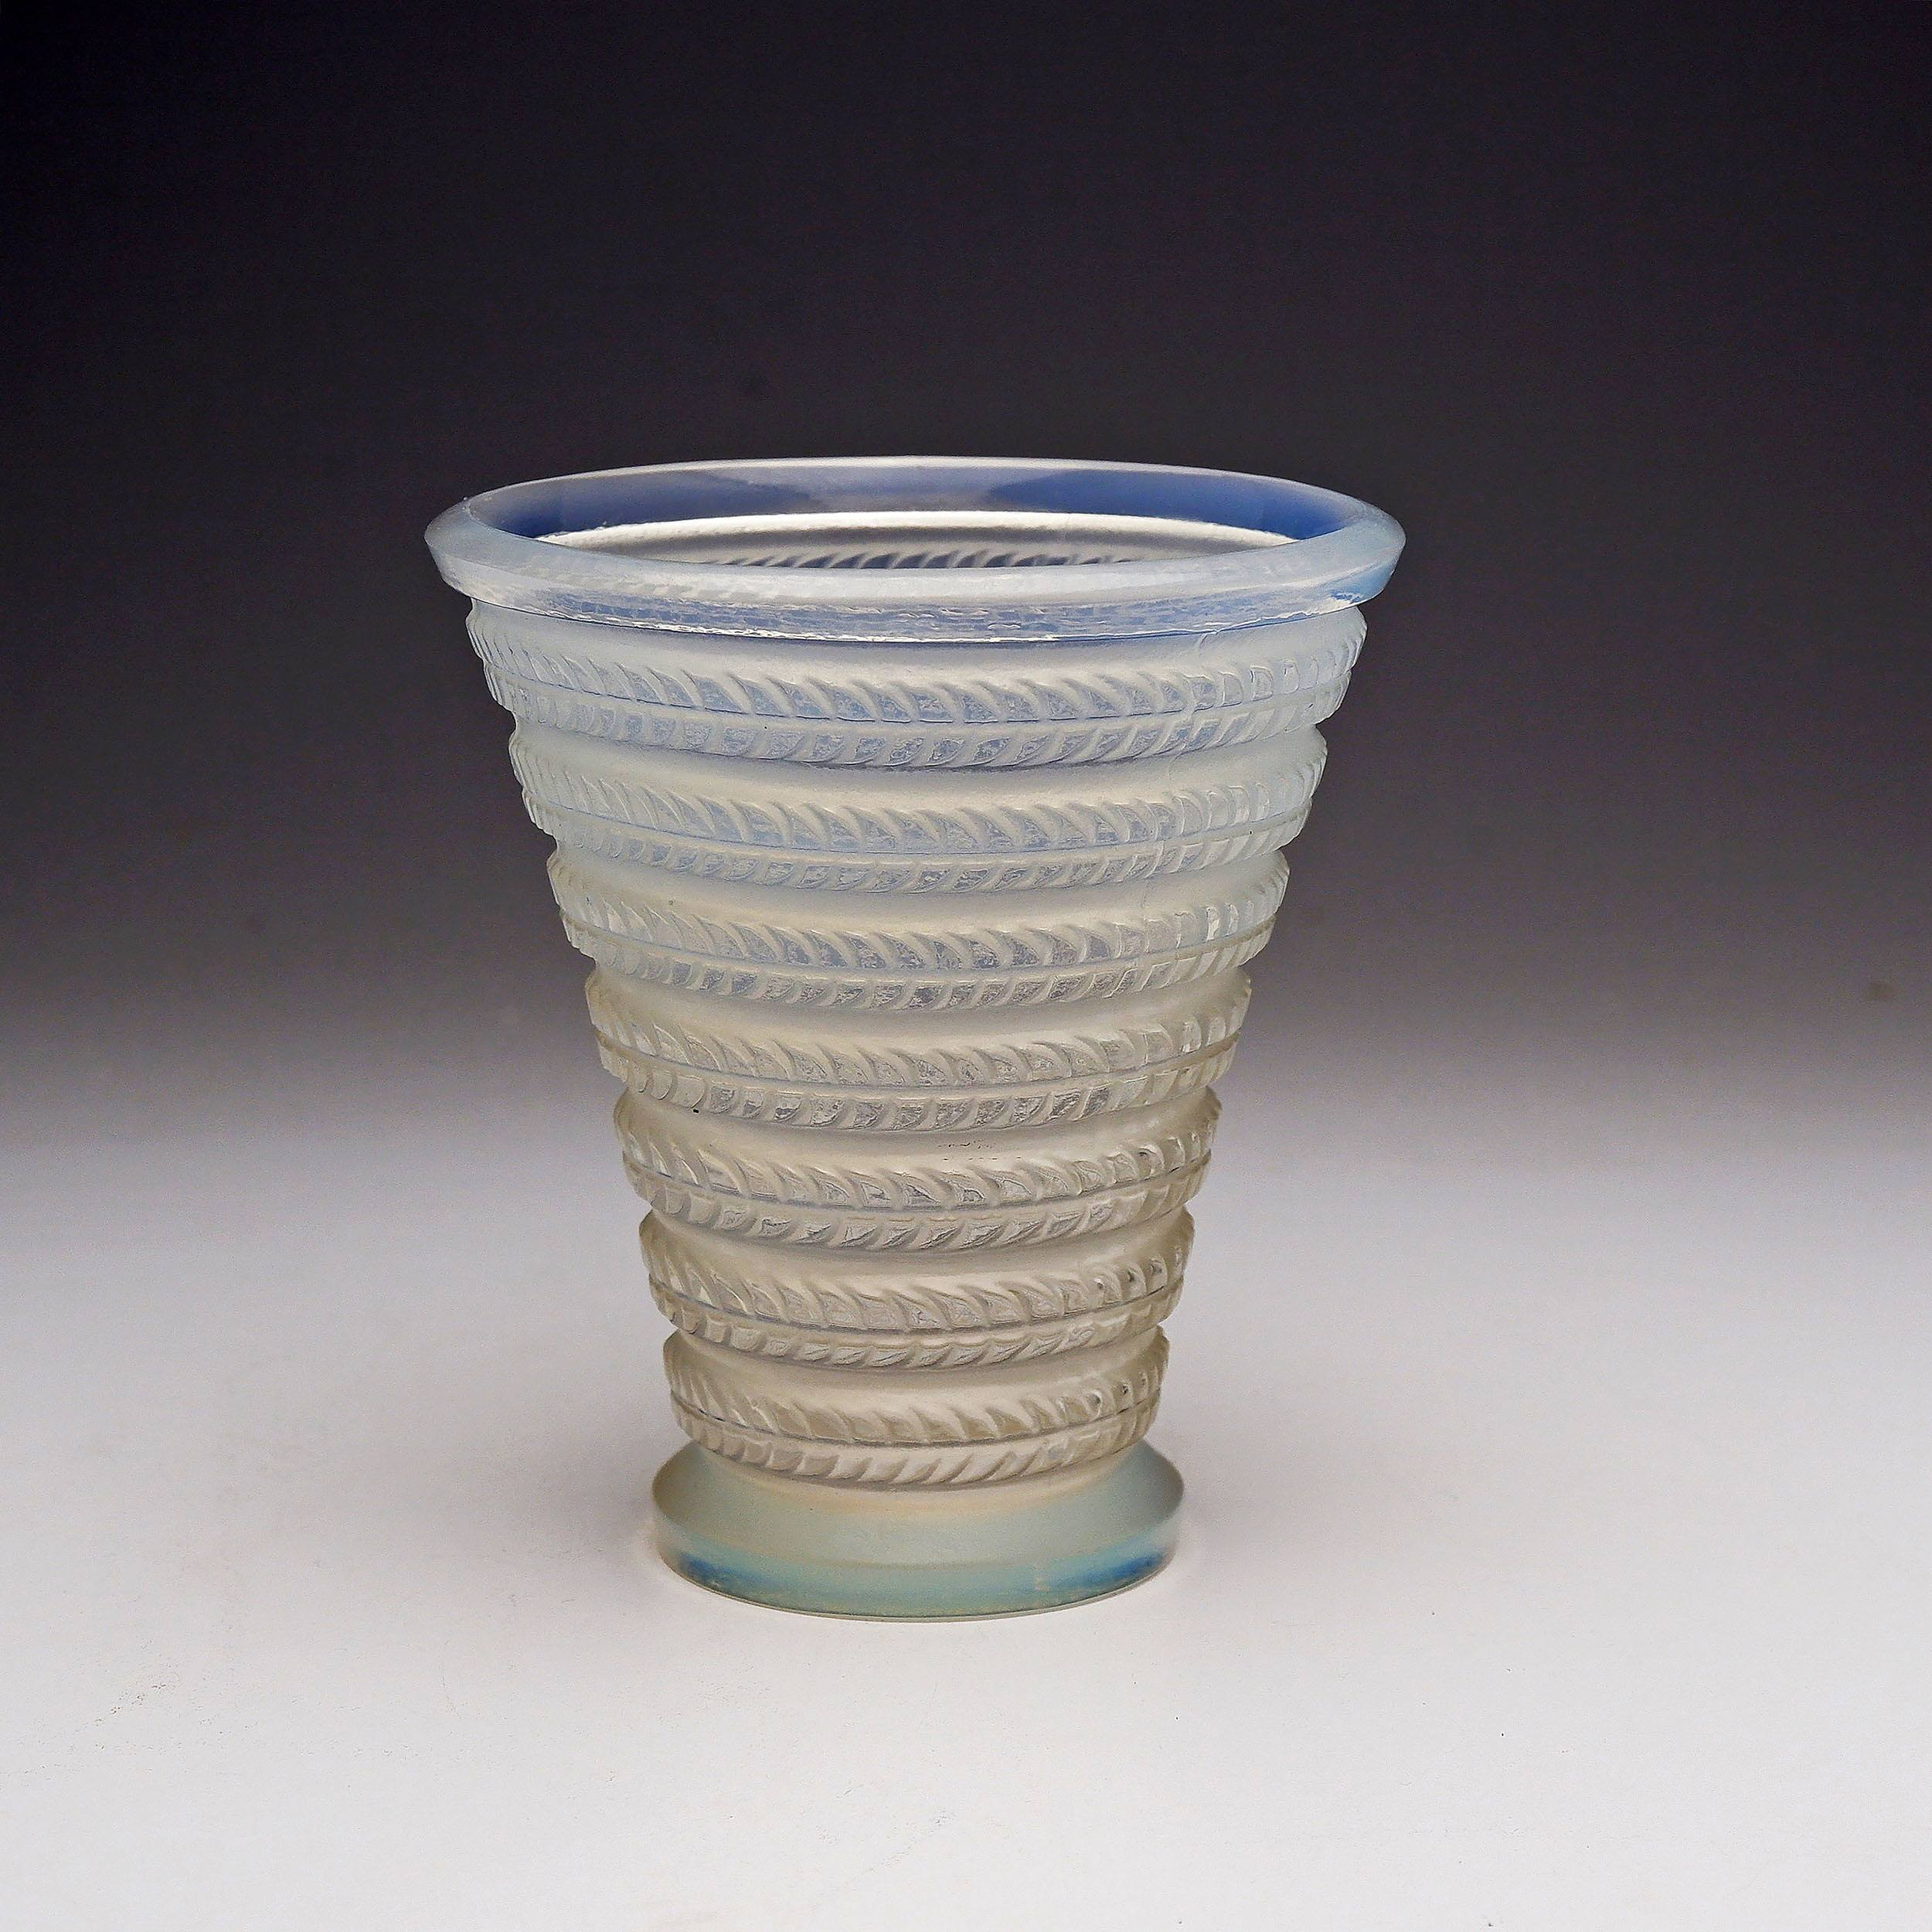 'Rene Lalique Cytise Vase in Opalescent Glass, Model no. 1095, Designed c.1926'